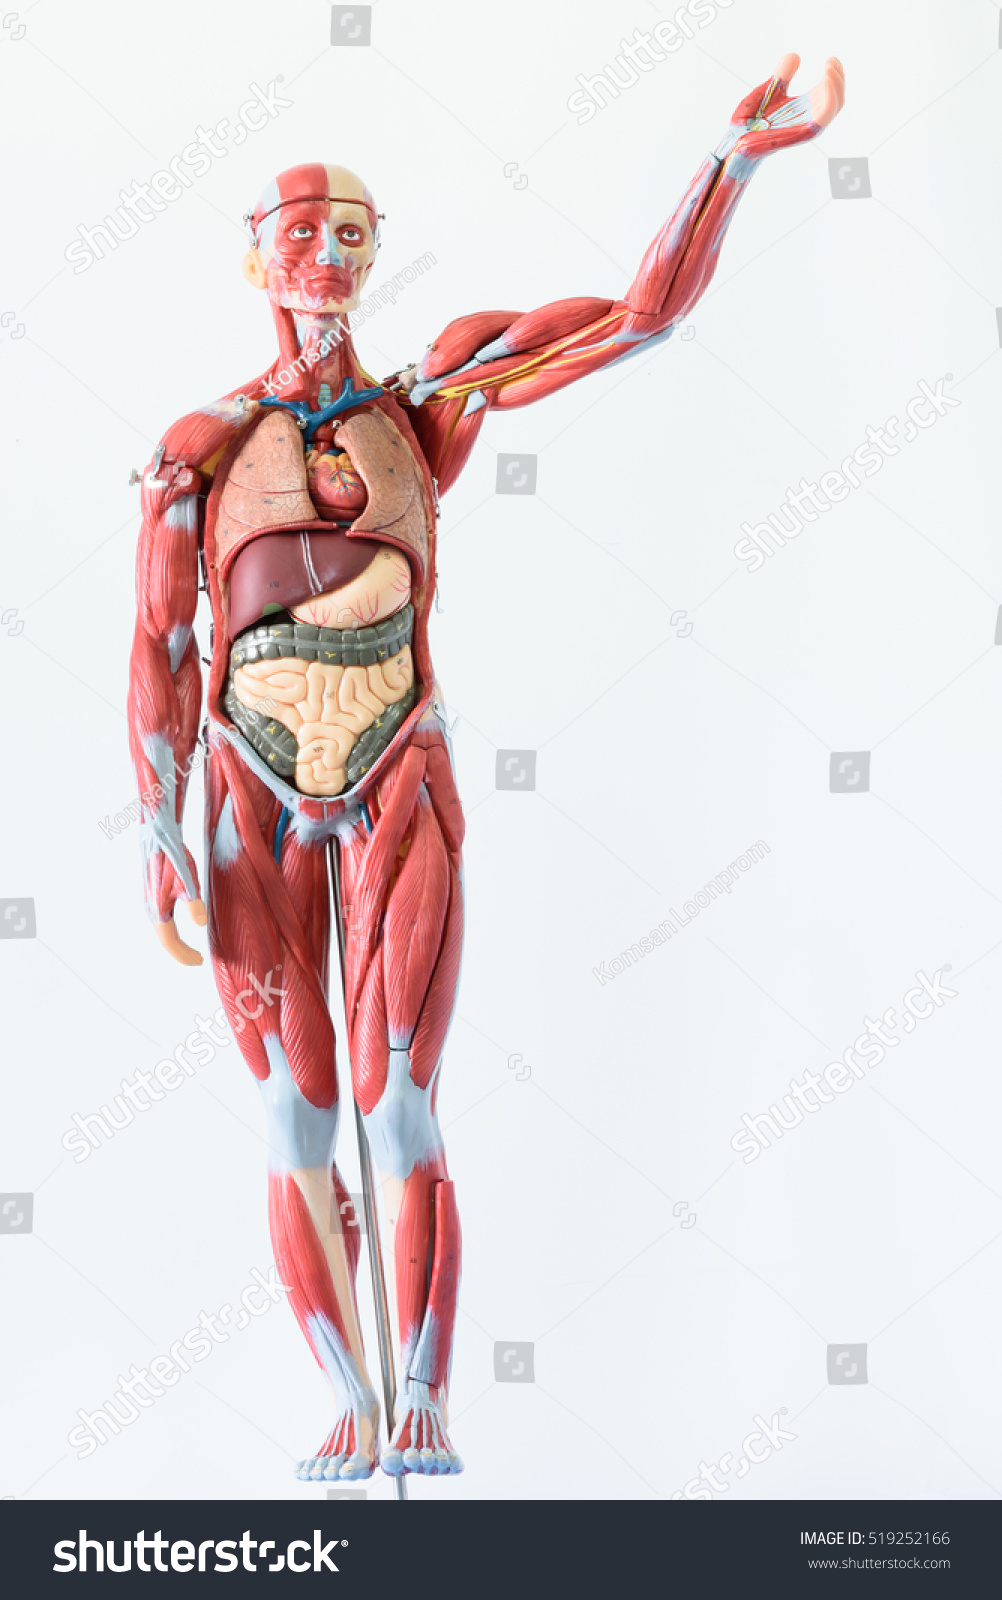 Anatomy Human Body Model On White Stockfoto Jetzt Bearbeiten